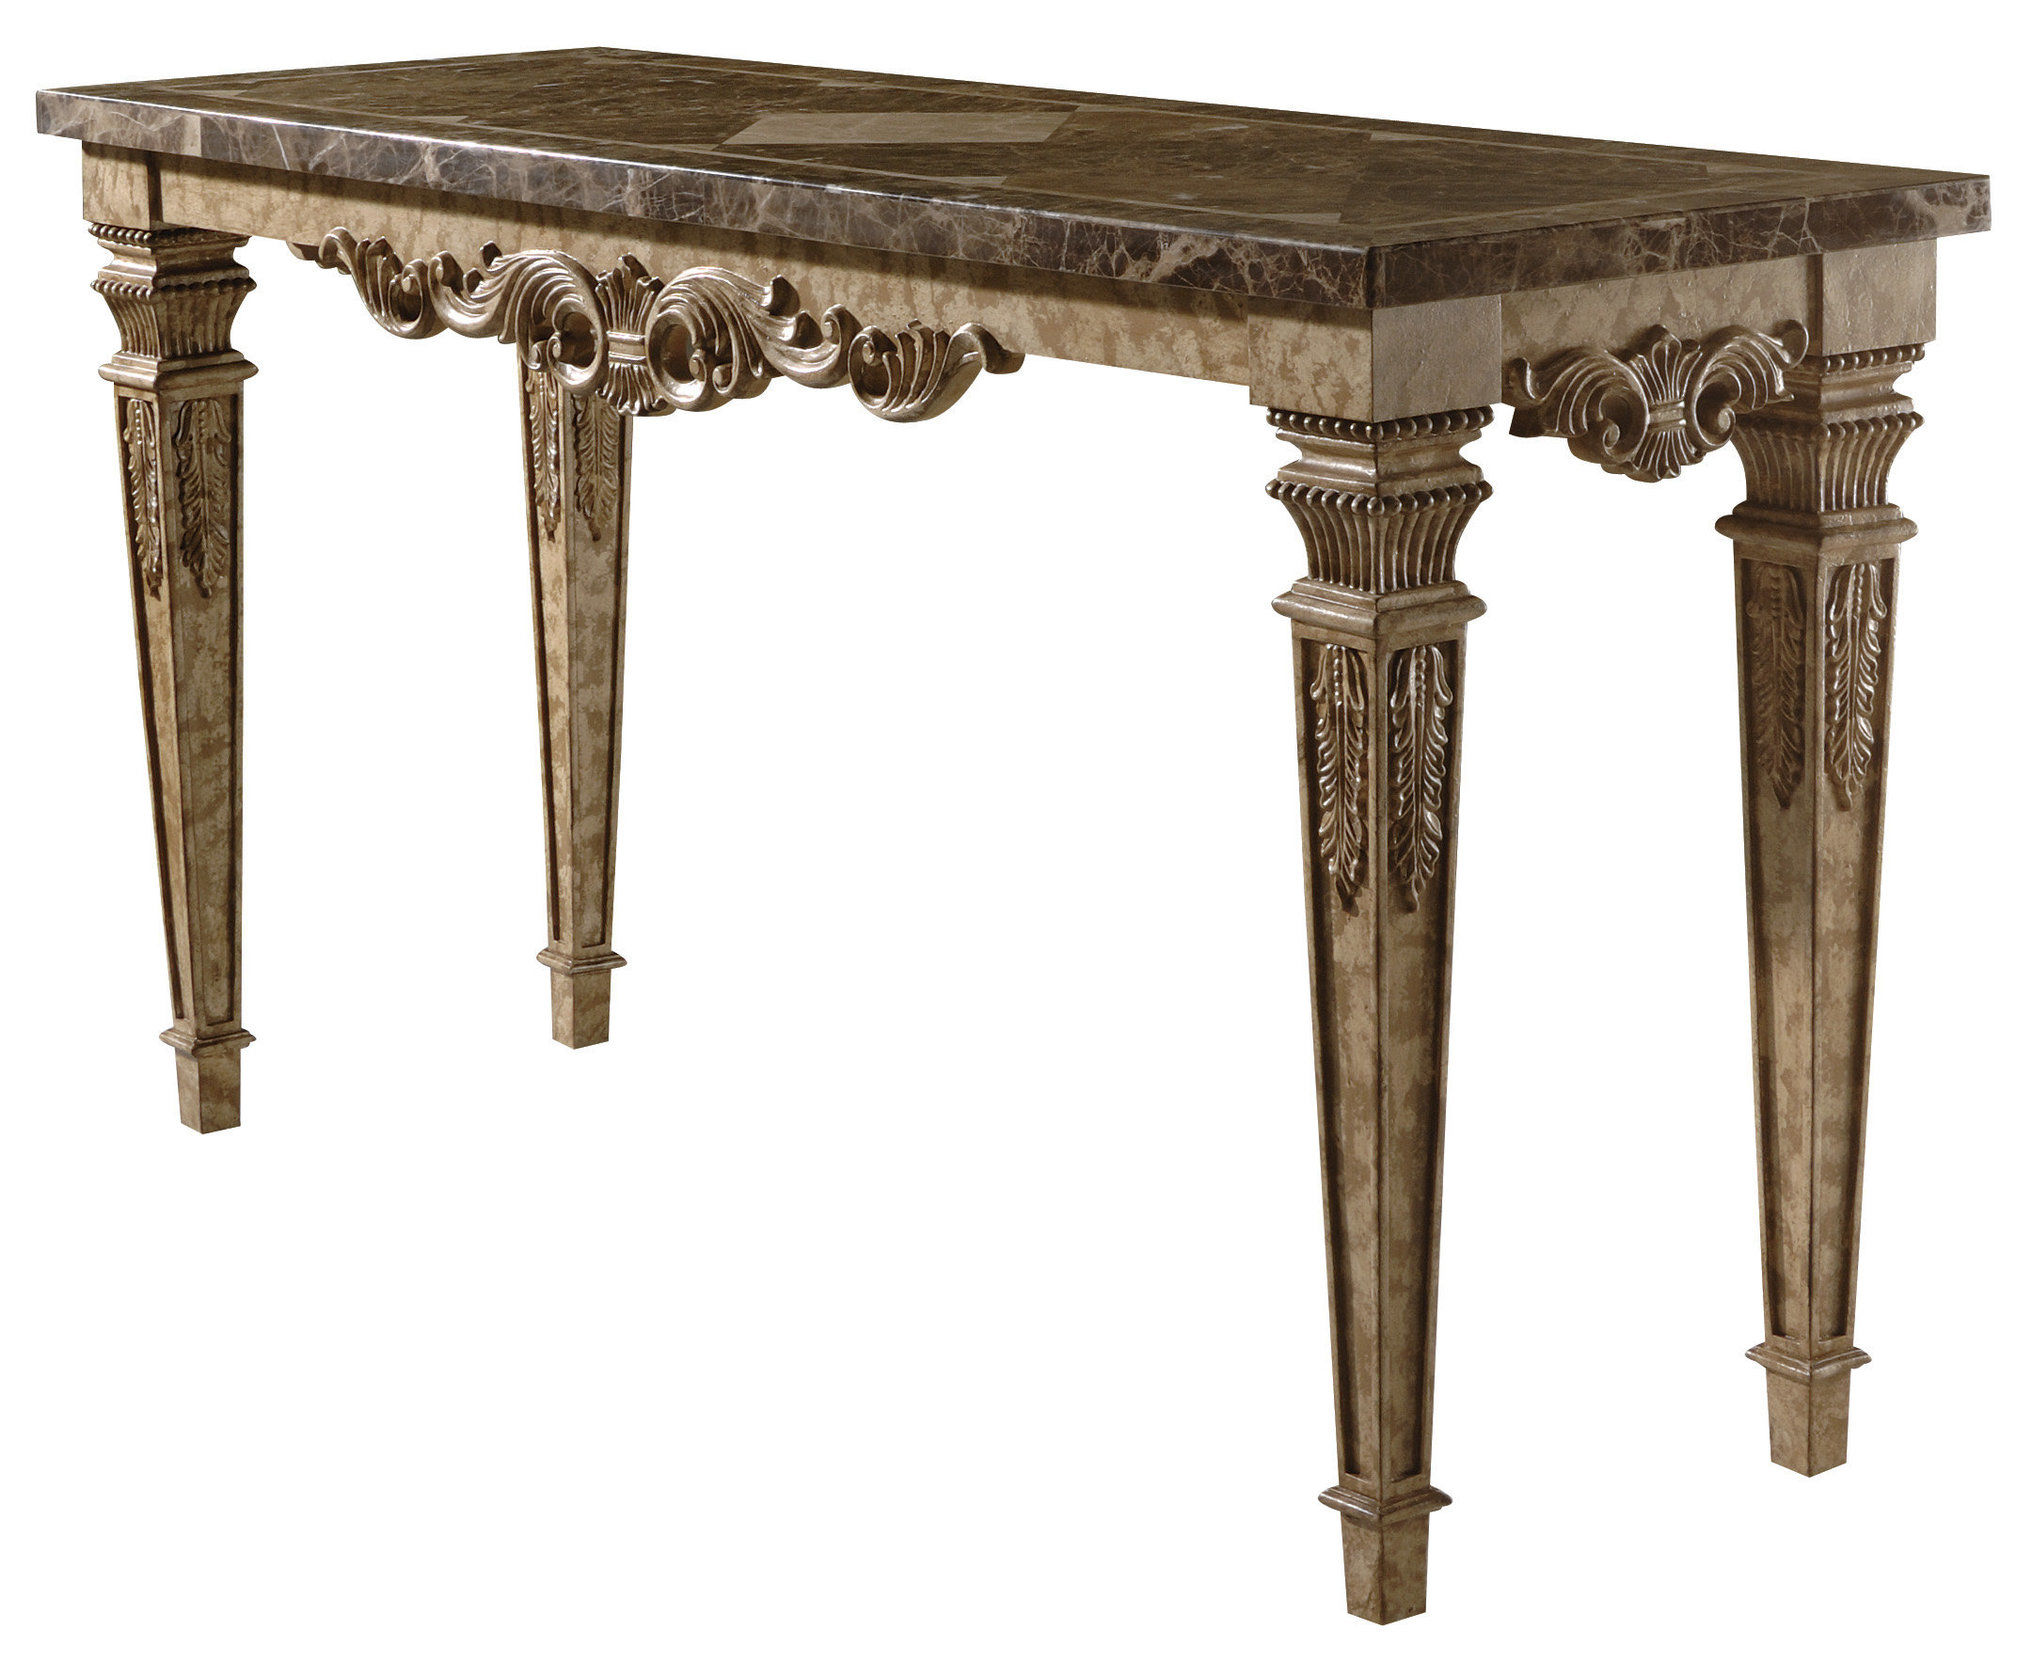 fresh broyhill sofa table image-Fantastic Broyhill sofa Table Décor